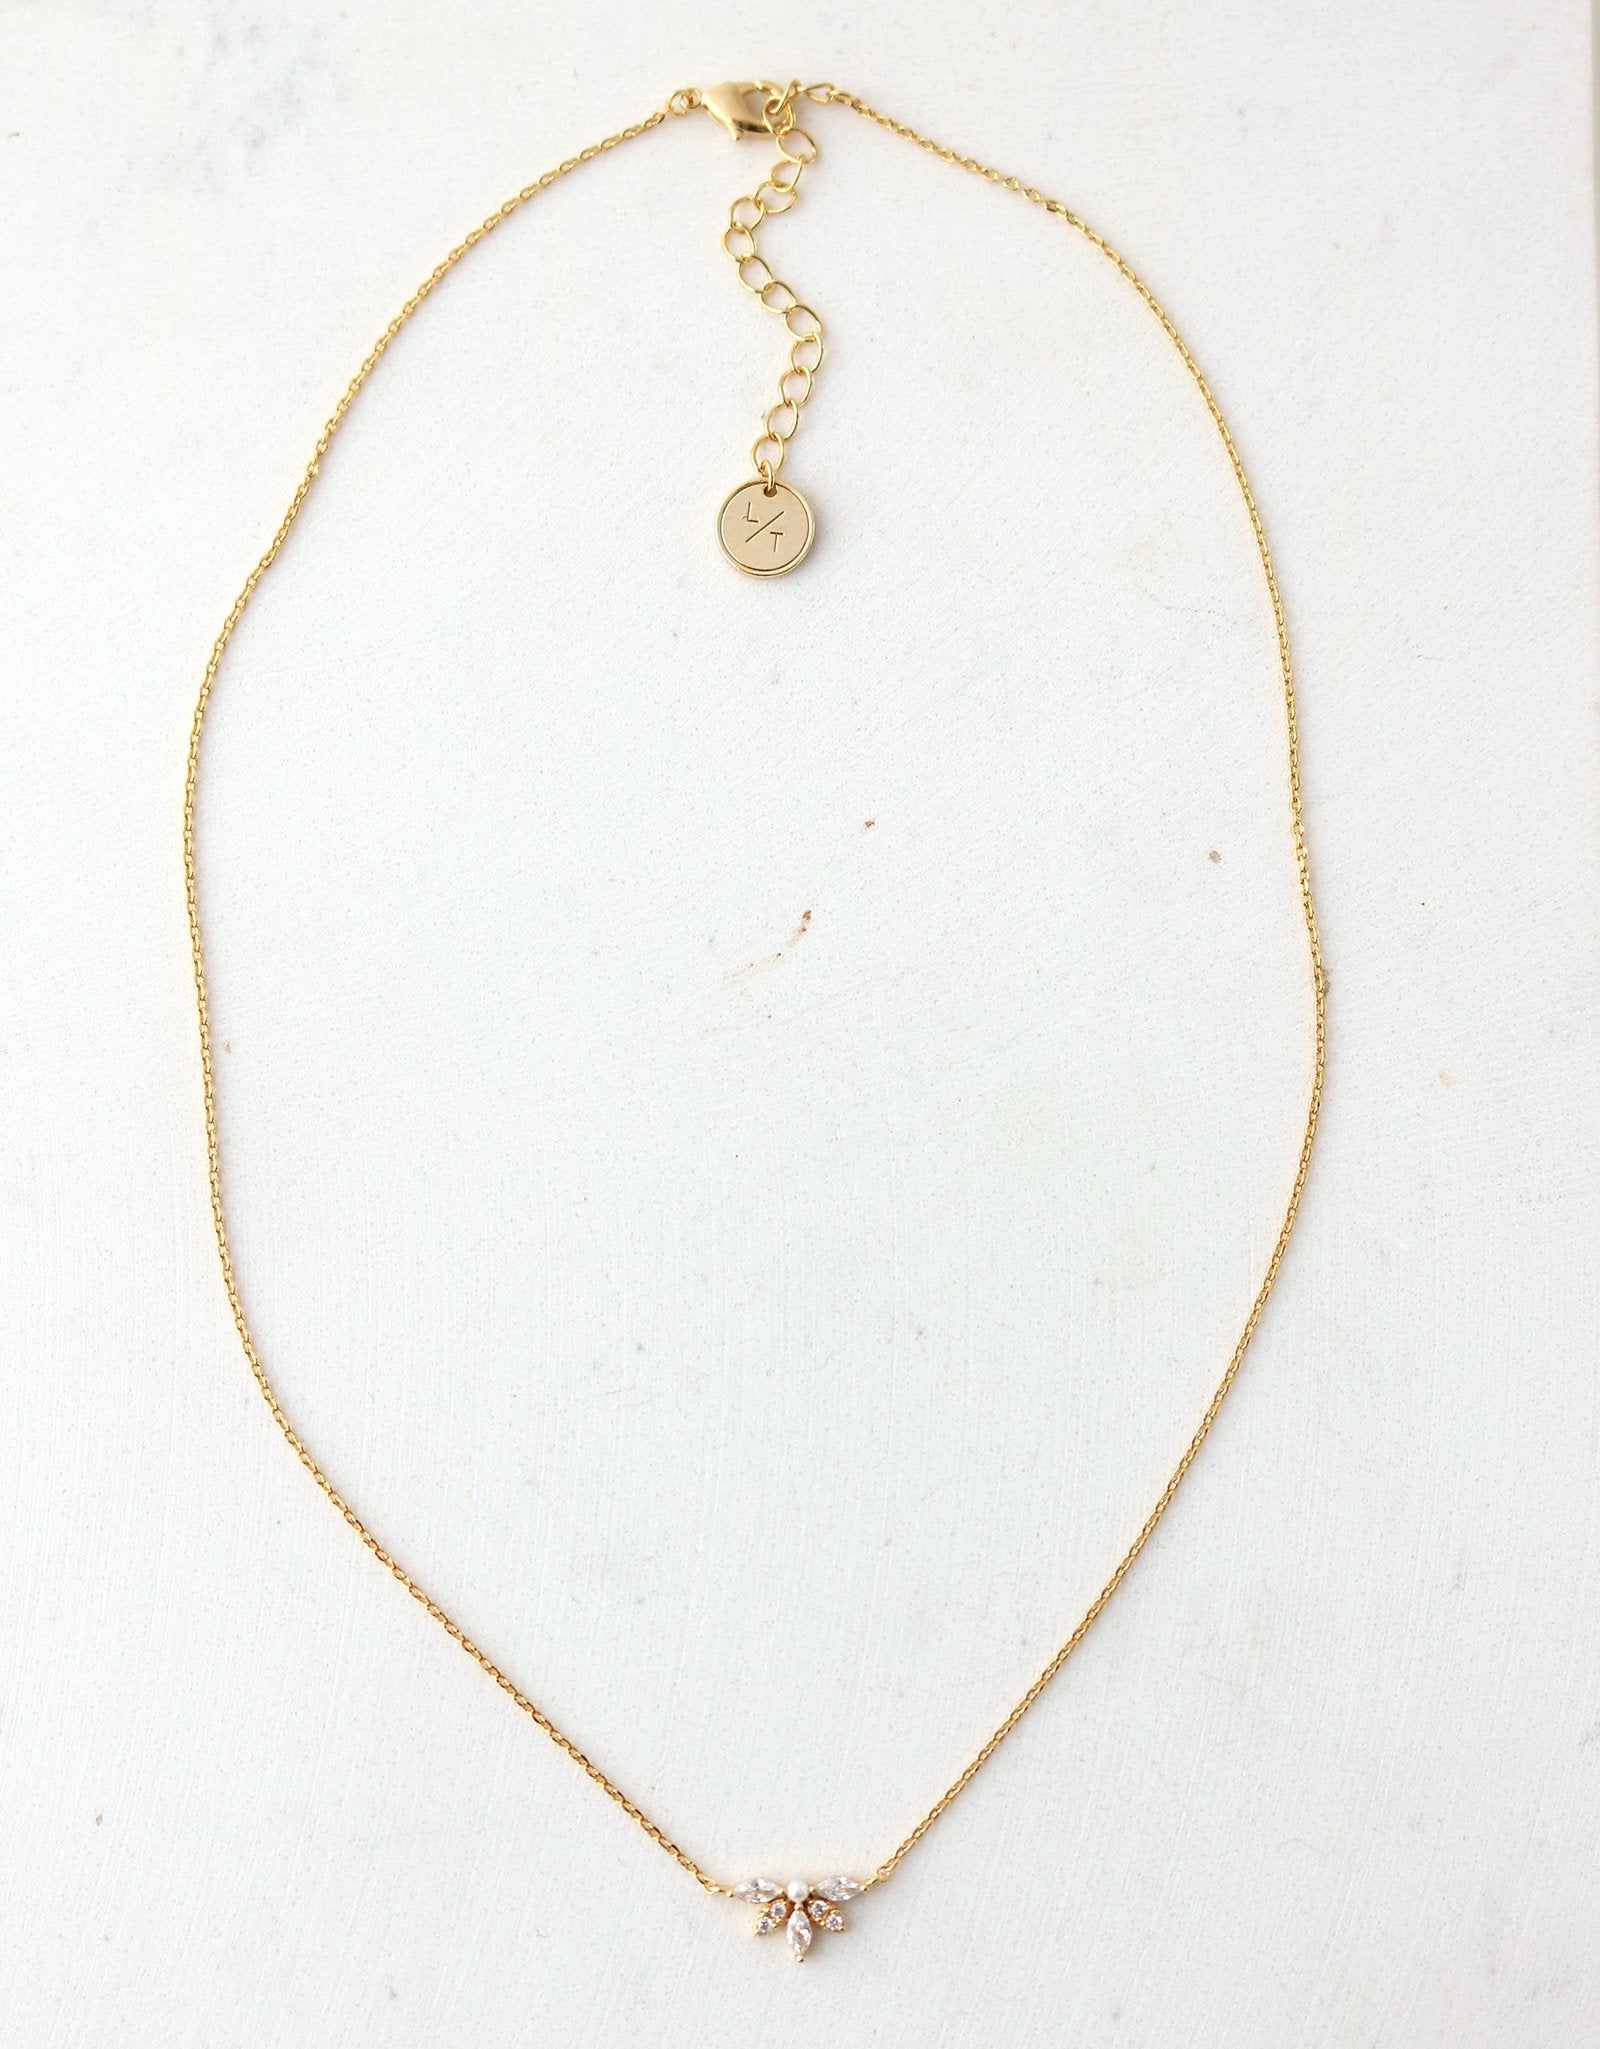 LOVER'S TEMPO - HARLOWE NECKLACE IN GOLD